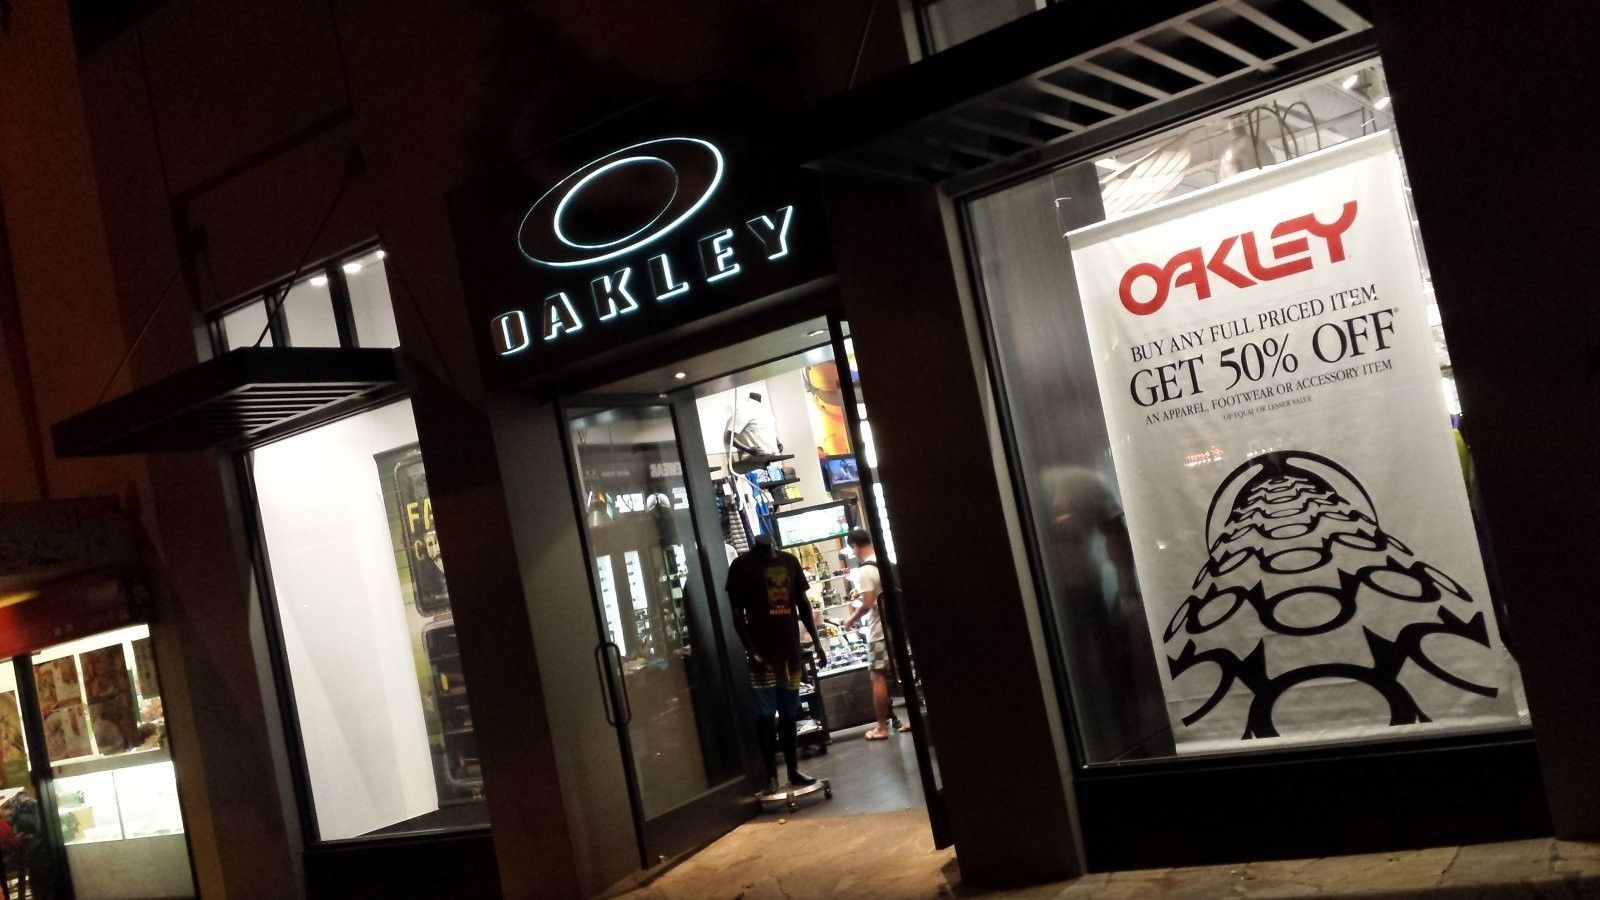 What Oakley Store Did You Visit Today? - 20140706_201652.jpg